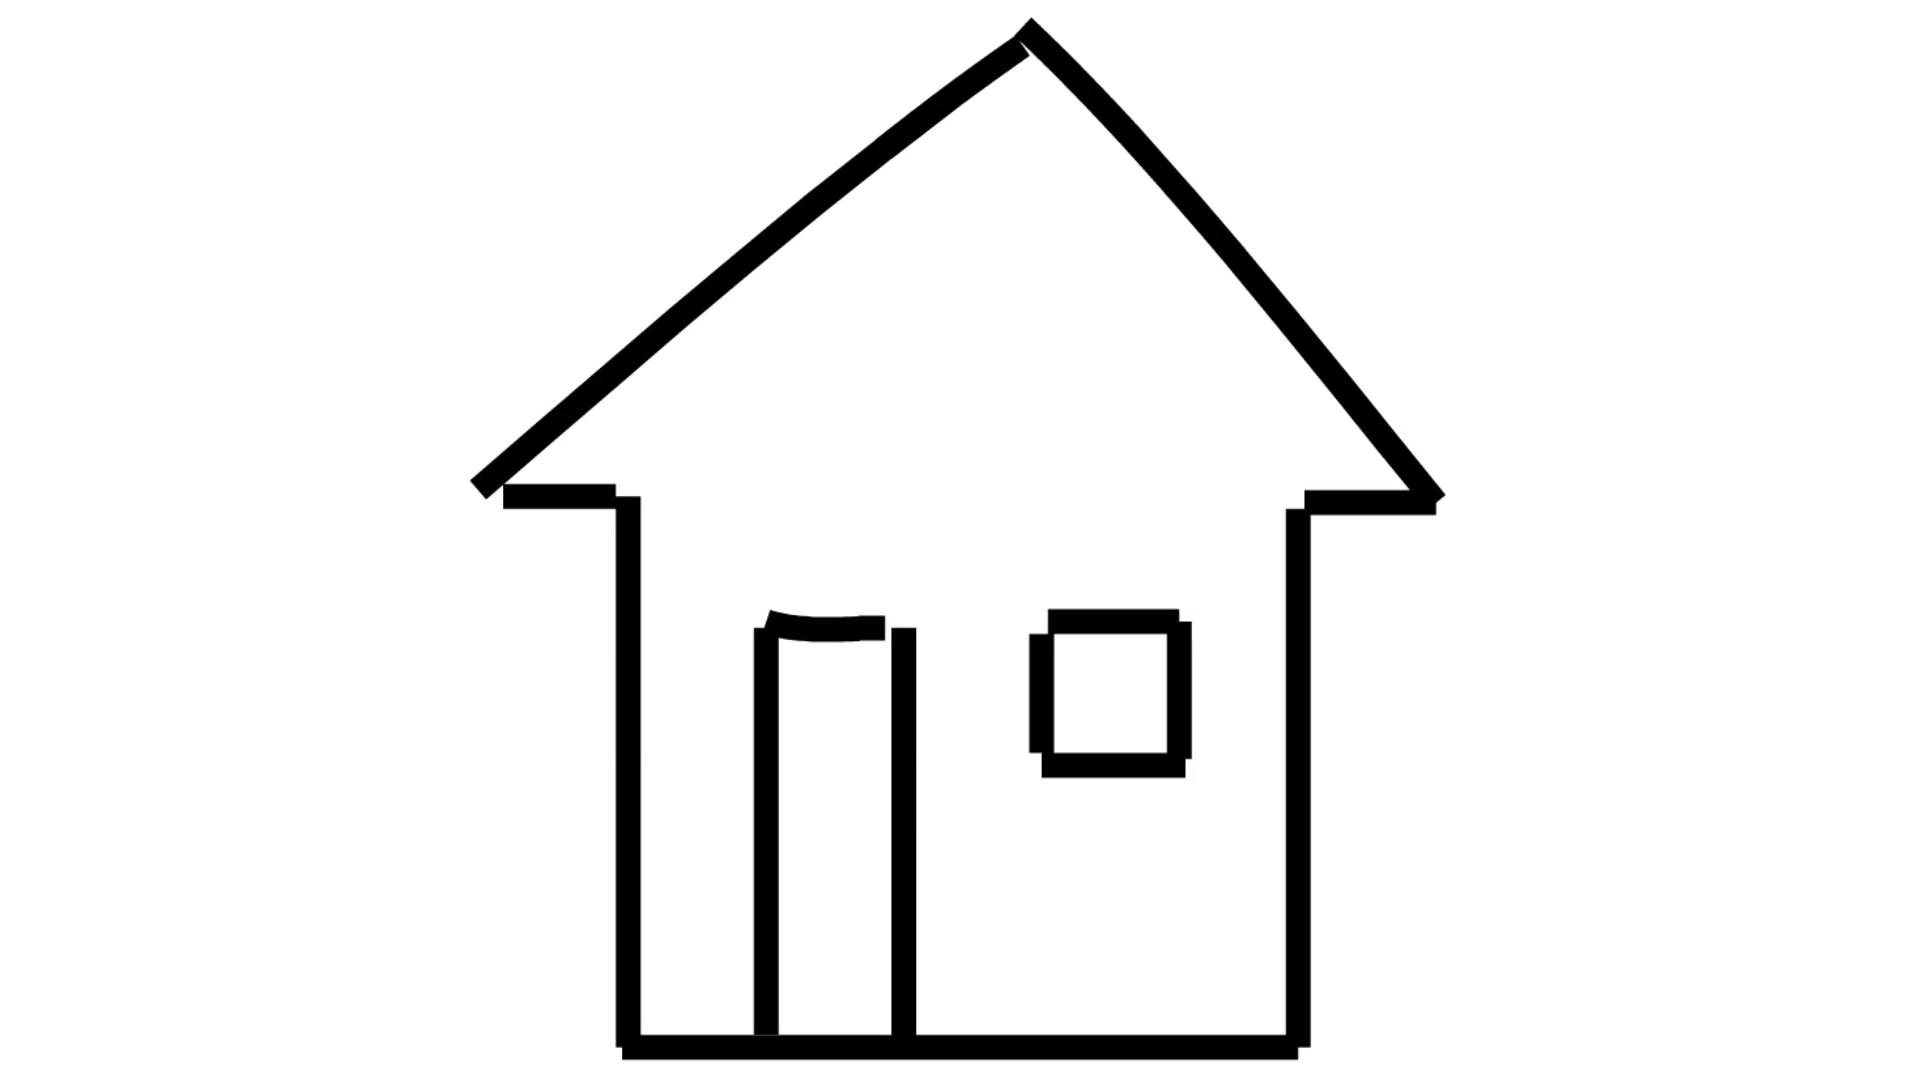 House love clipart black and white transparent background vector royalty free library House line drawing illustration animation with transparent background vector royalty free library